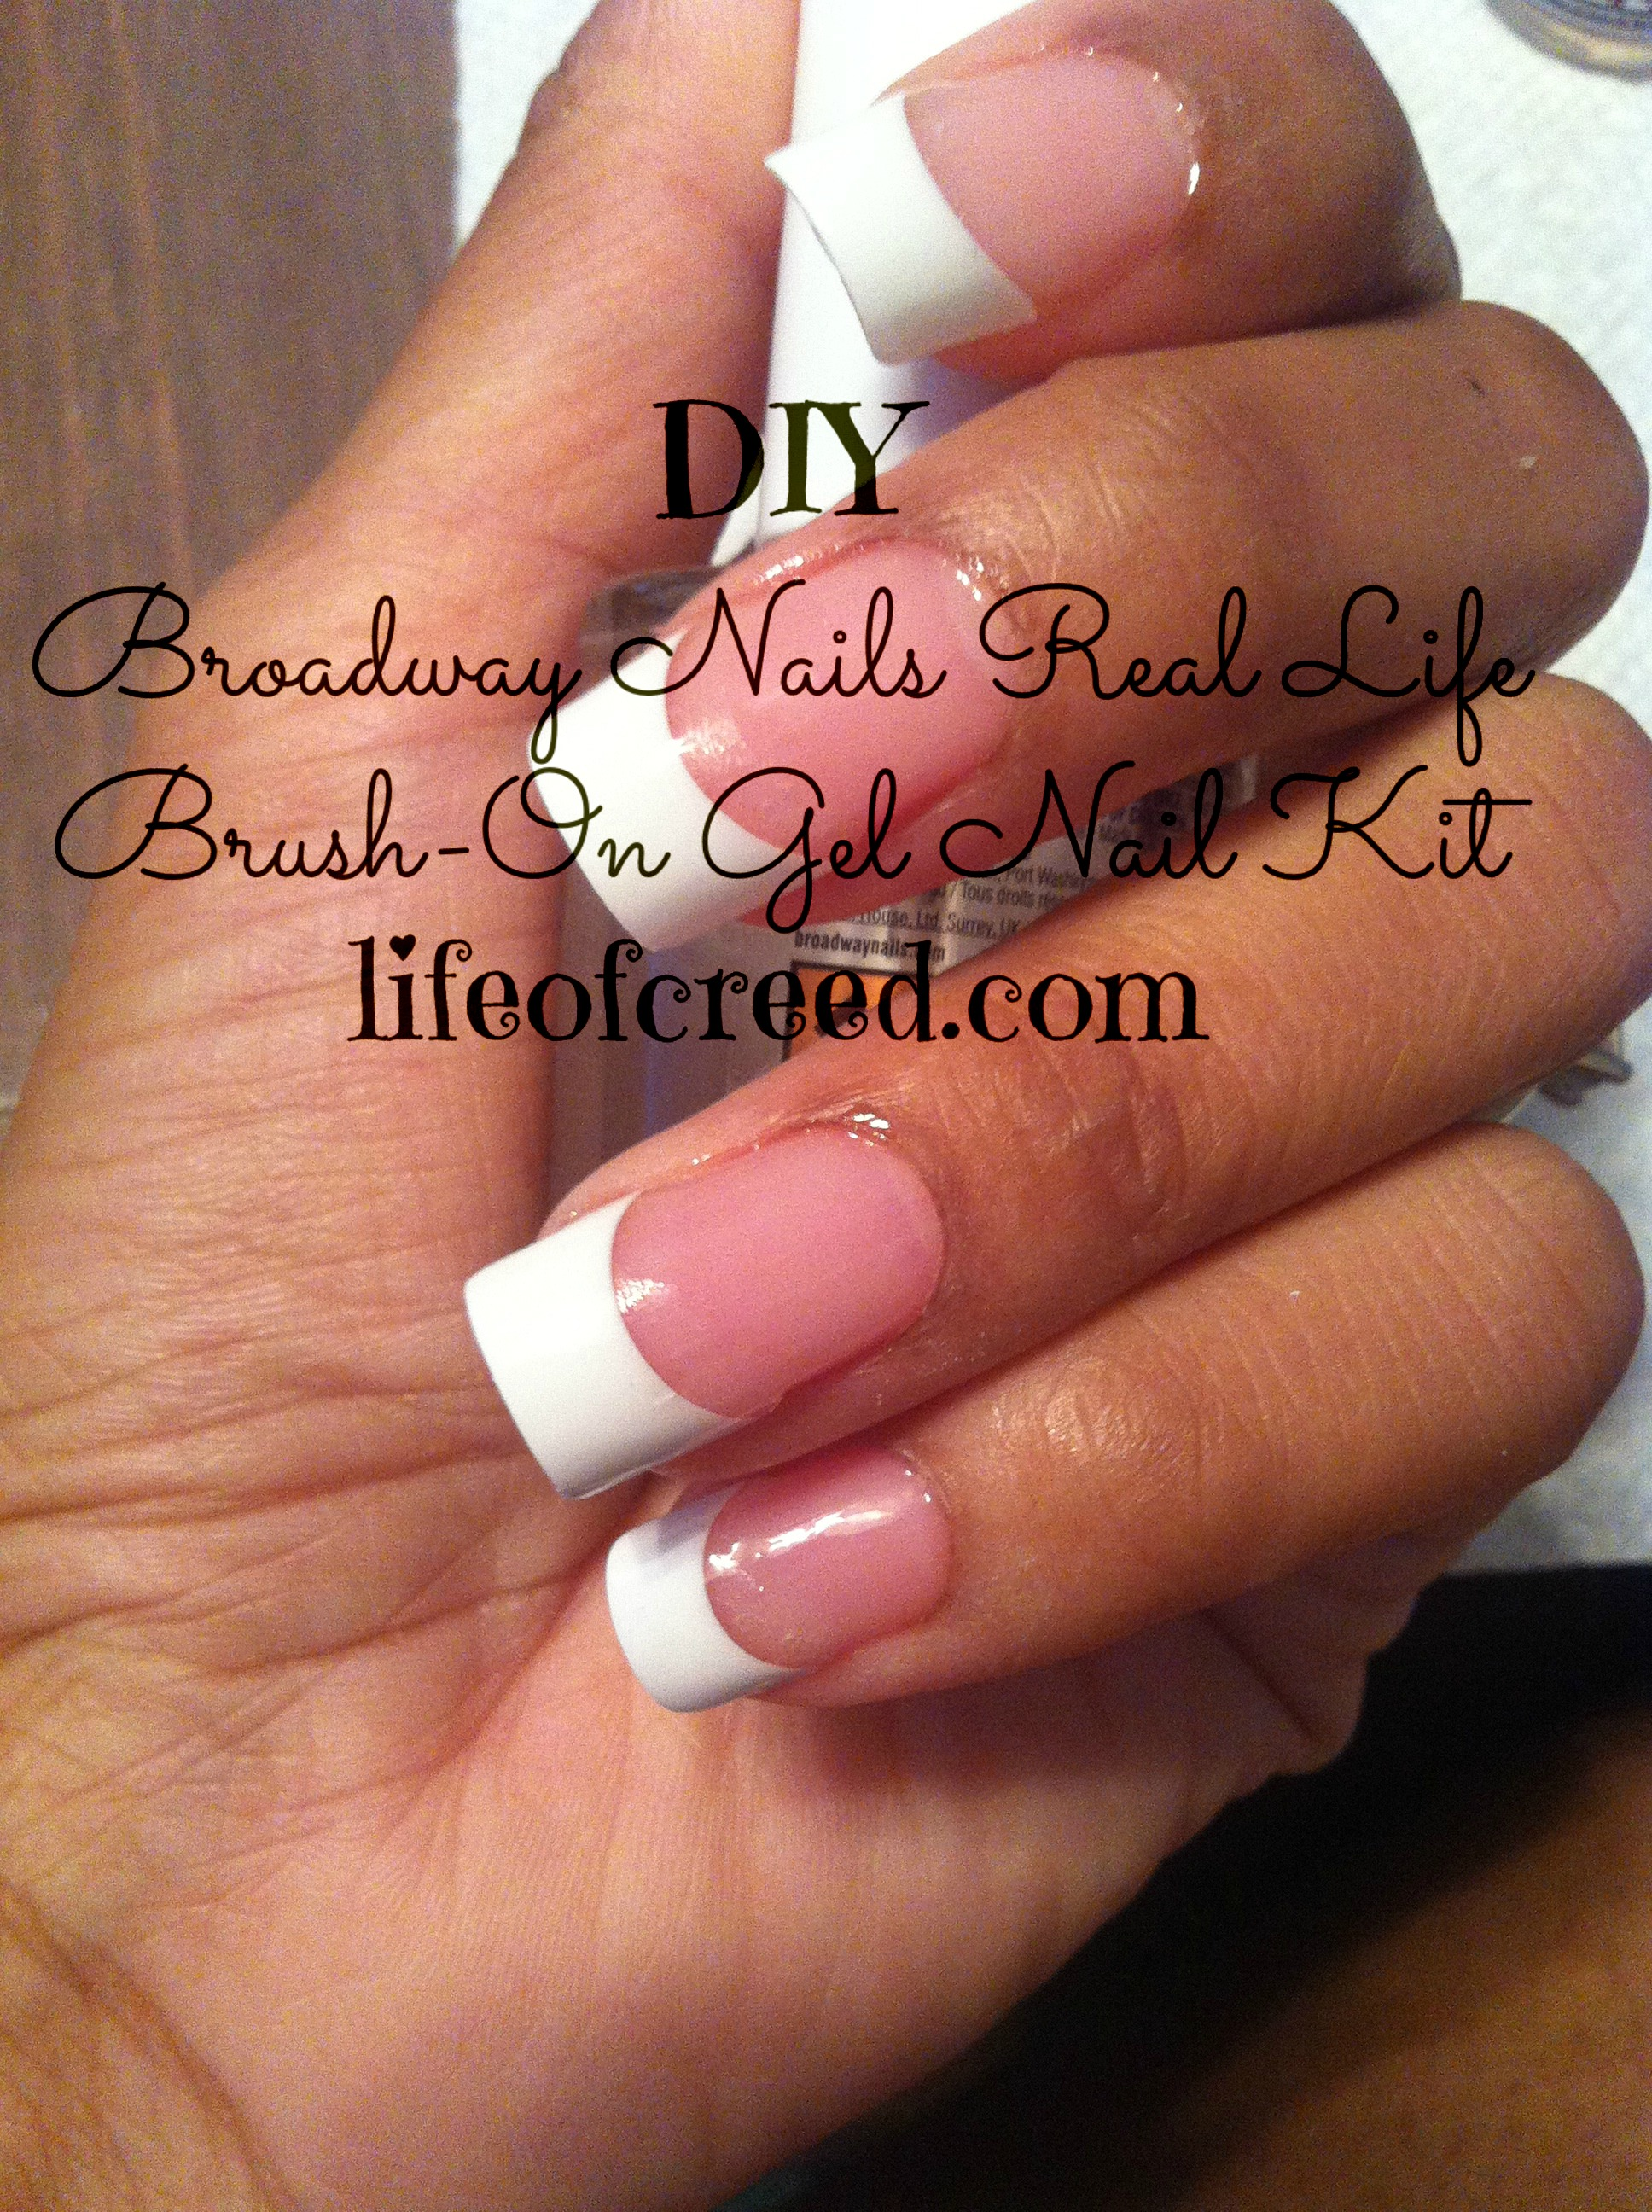 Diy Broadway Nails Real Life Brush On Gel Nail Kit